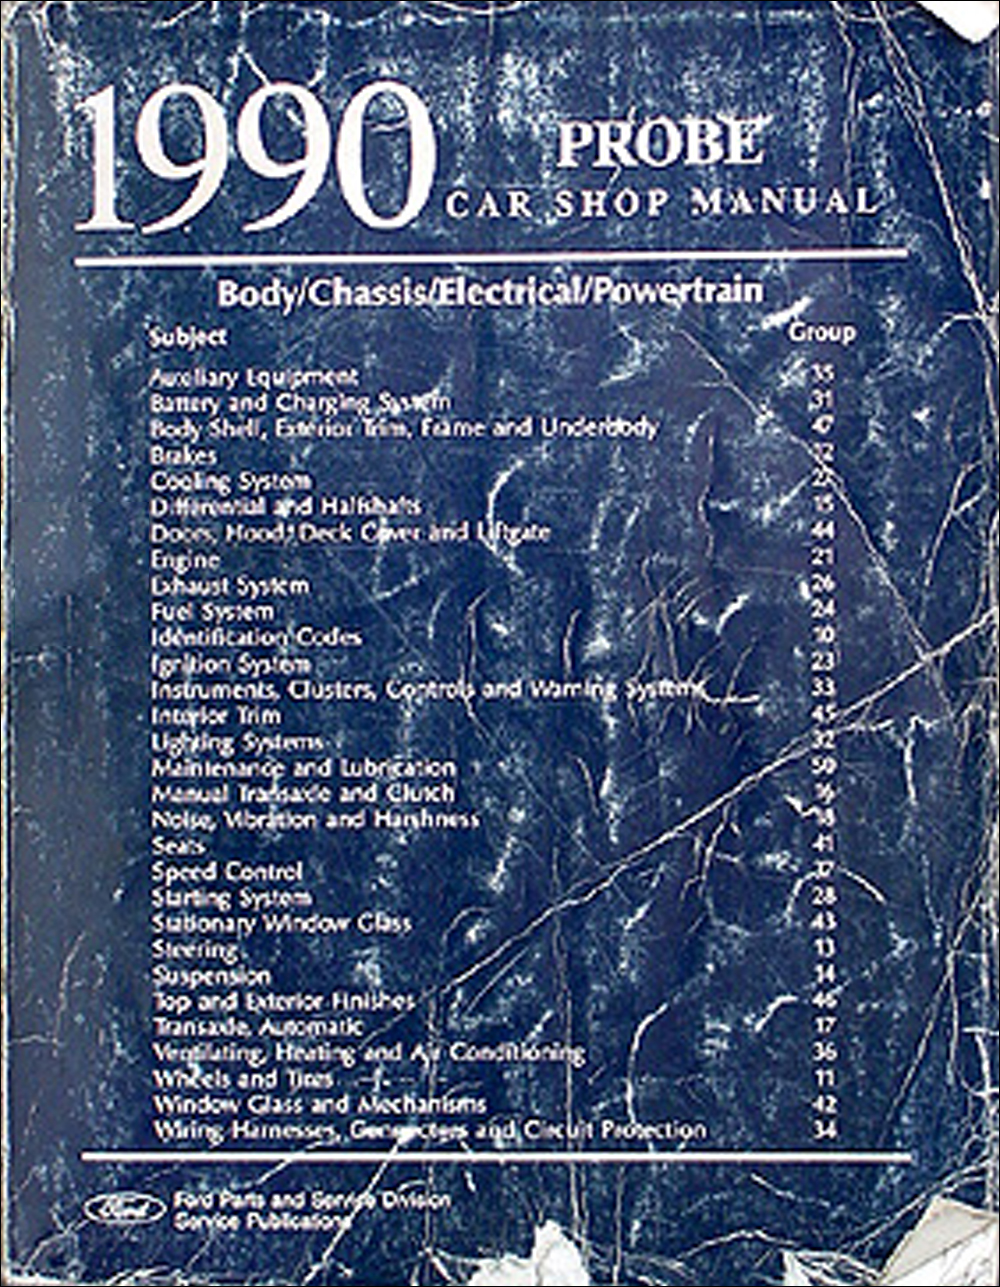 medium resolution of 1990 ford probe repair shop manual original including gl lx gt1990 ford probe repair manual original